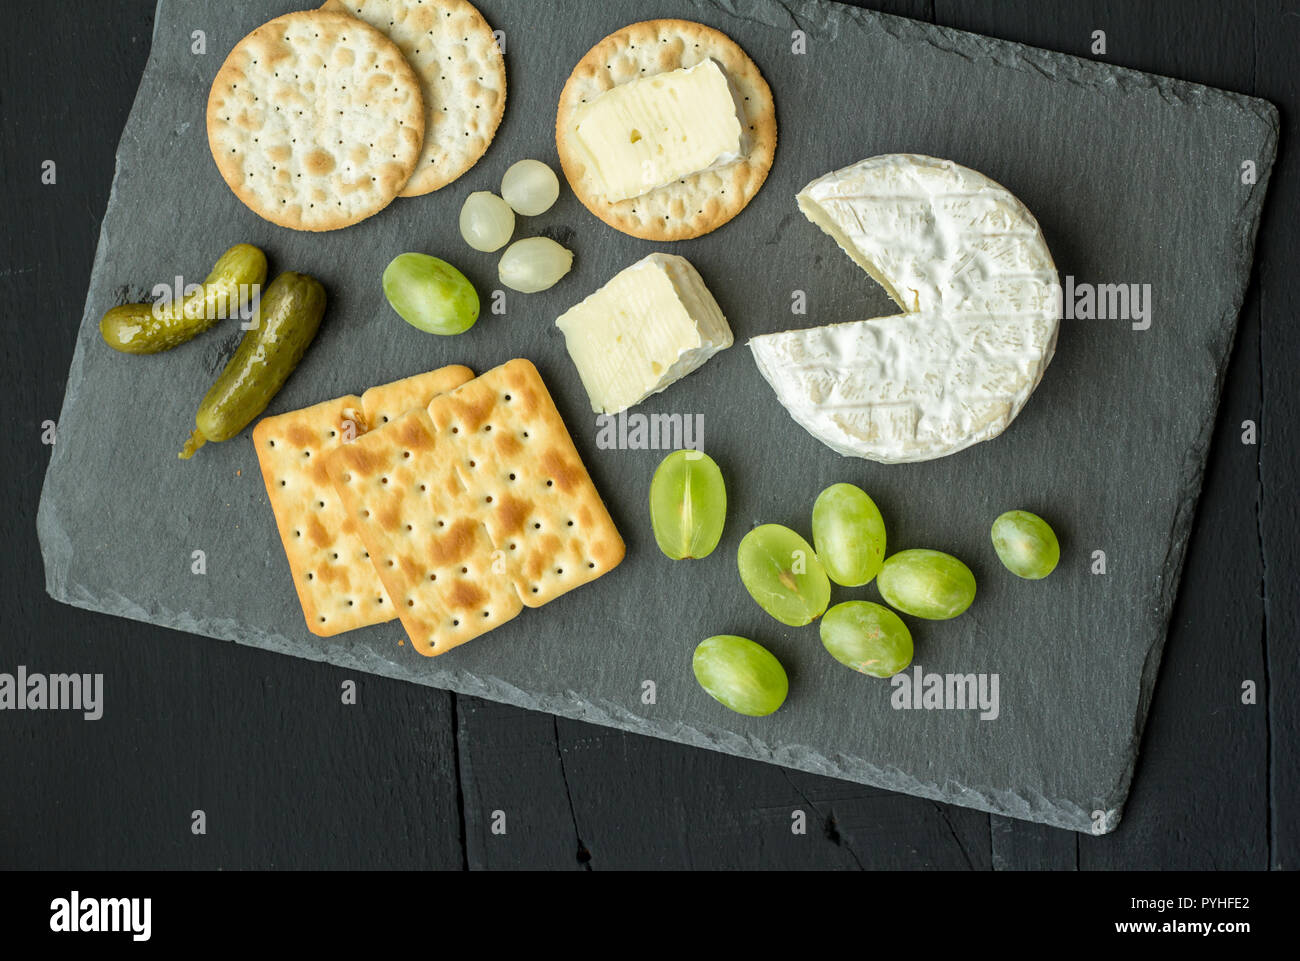 Camembert cheese and slices on water crackers with dill pickles and green grapes on black slate cheese board - Top view studio photograph - Stock Image